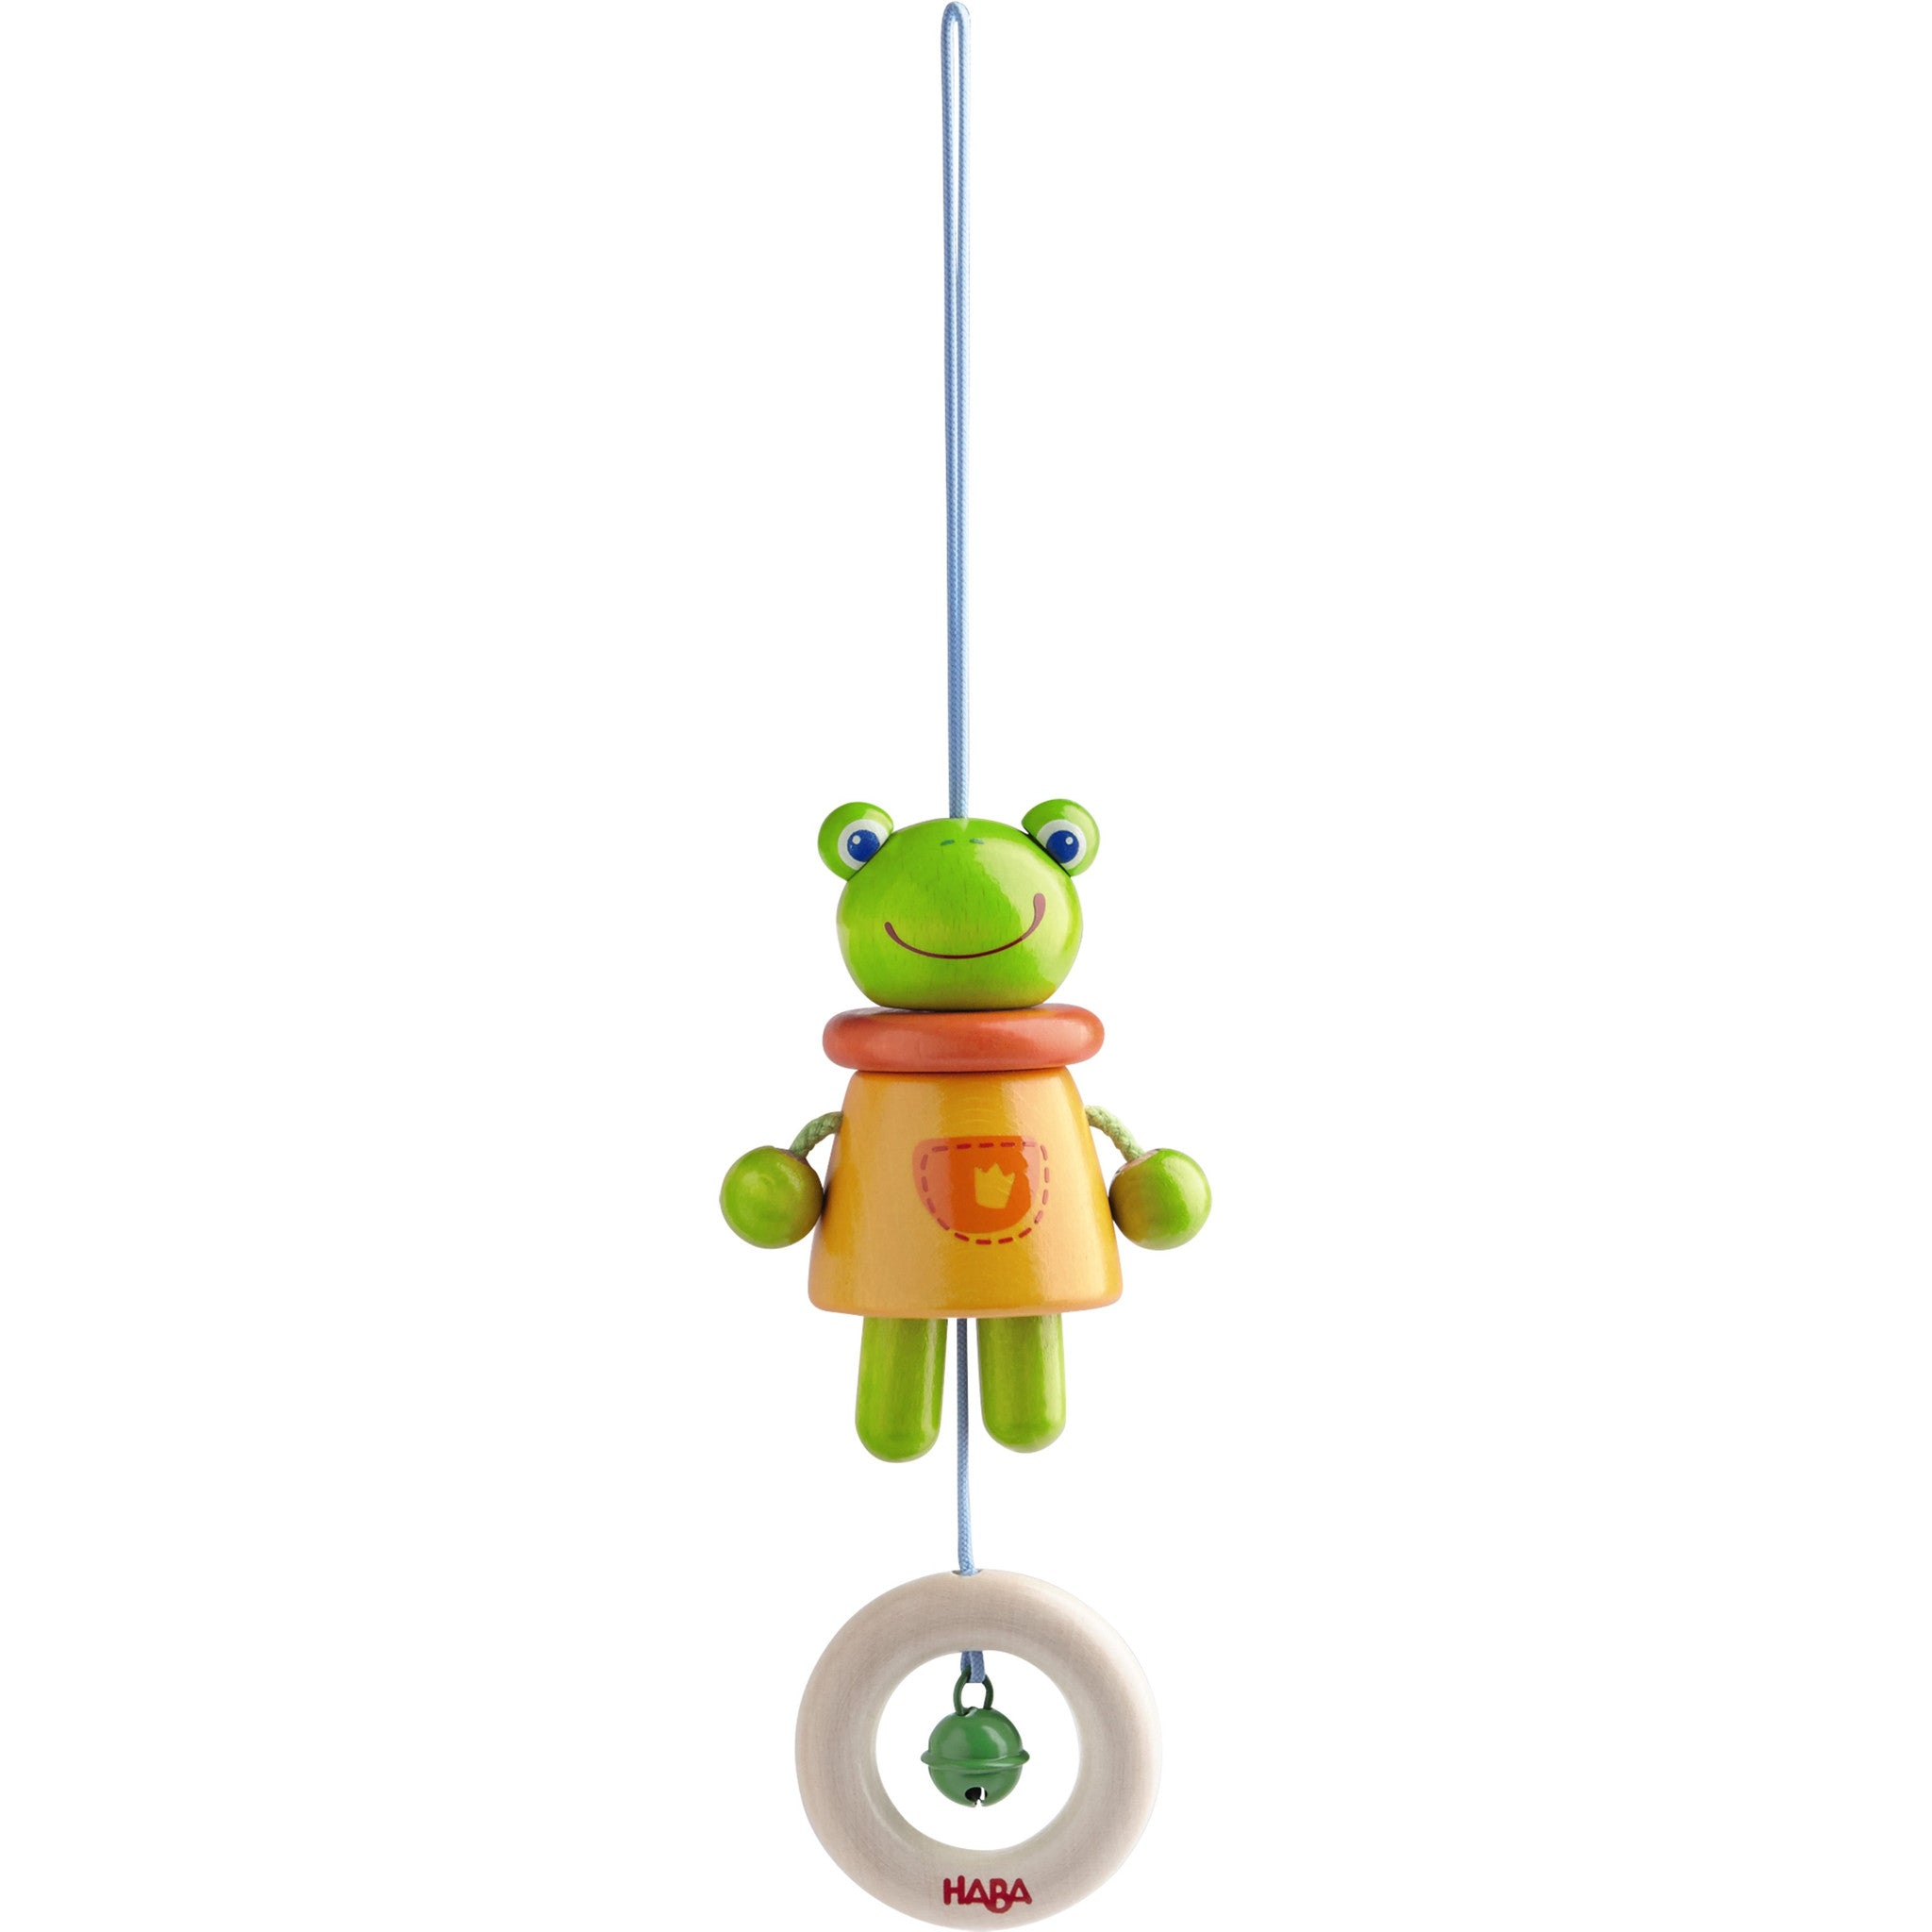 Haba Dangling Figures